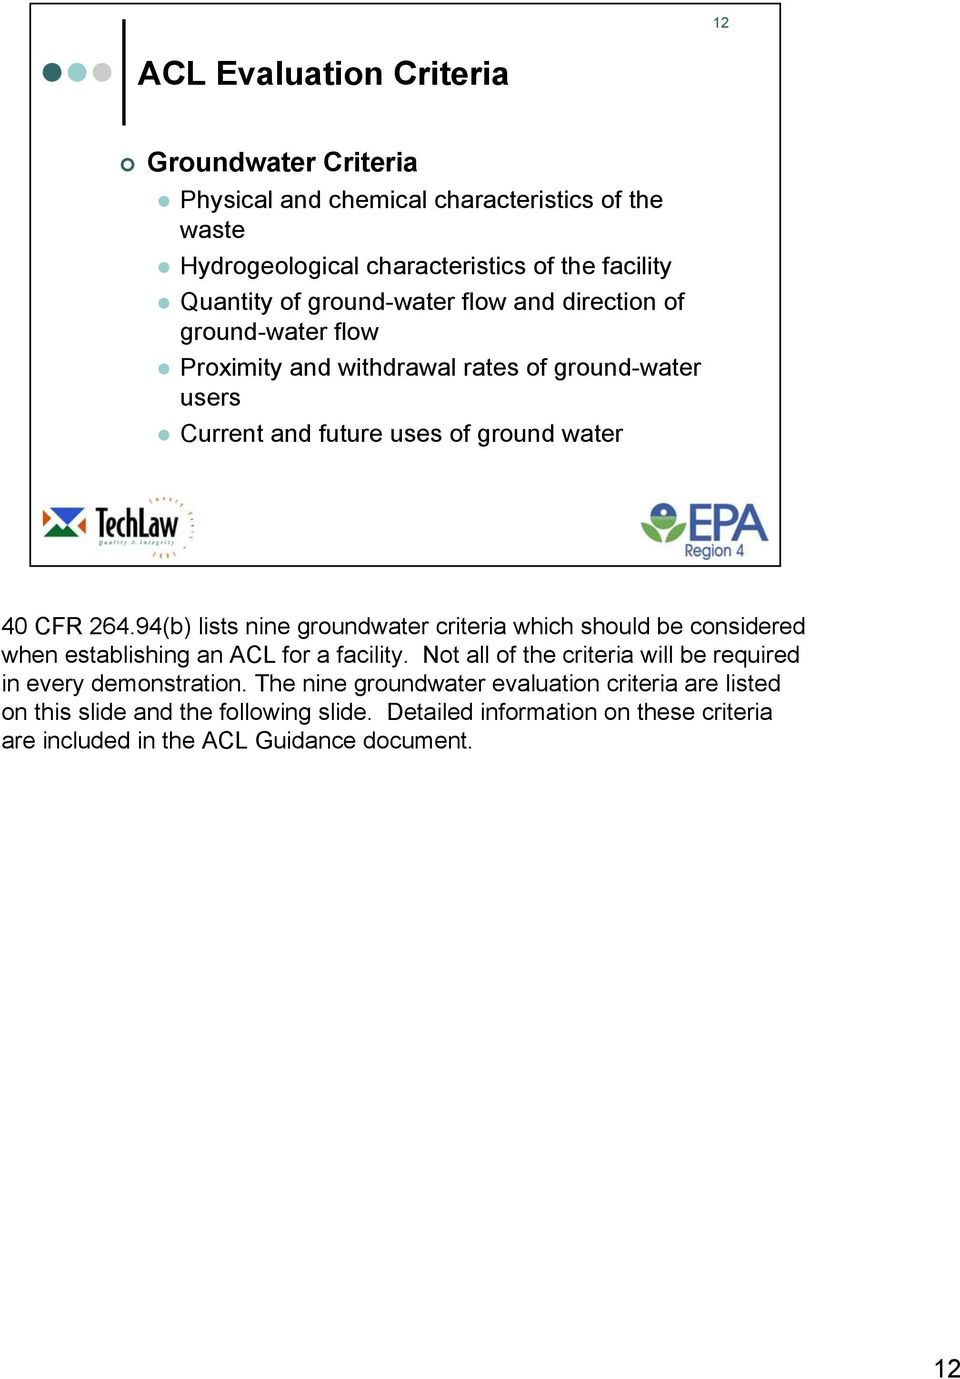 94(b) lists nine groundwater criteria which should be considered when establishing an ACL for a facility.